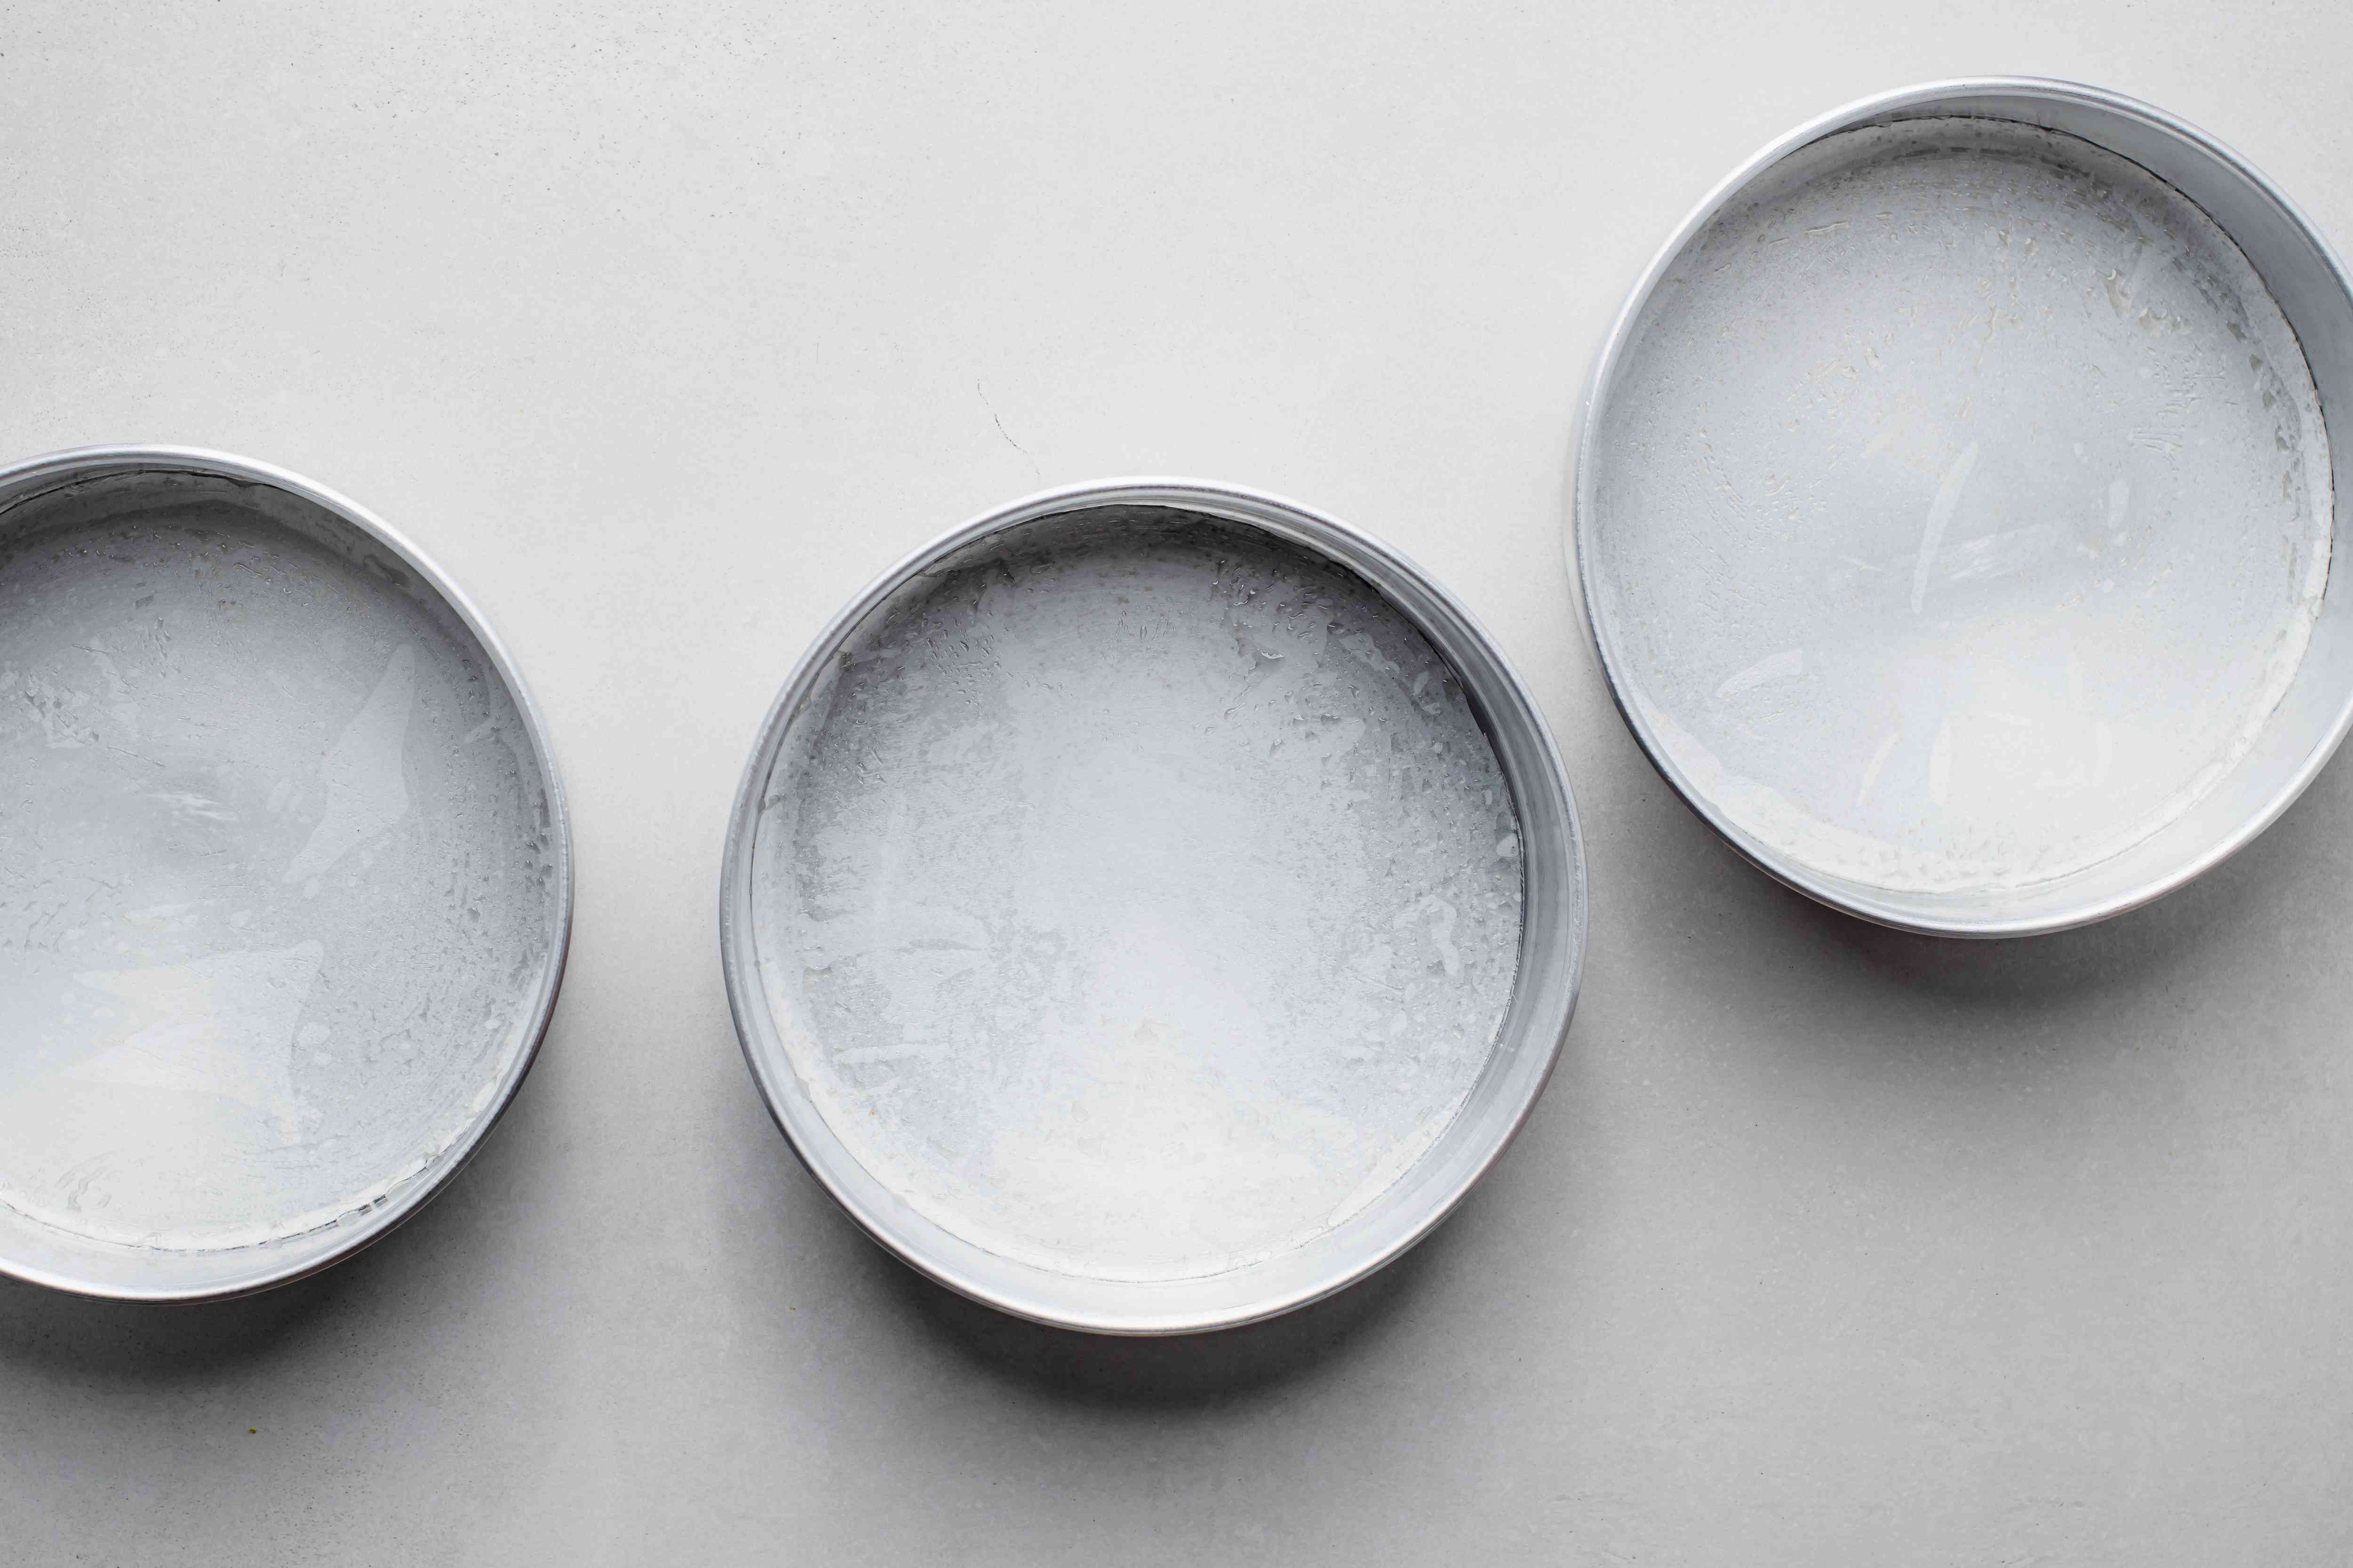 3 tube pans greased with cooking spray and parchment circle on the bottom